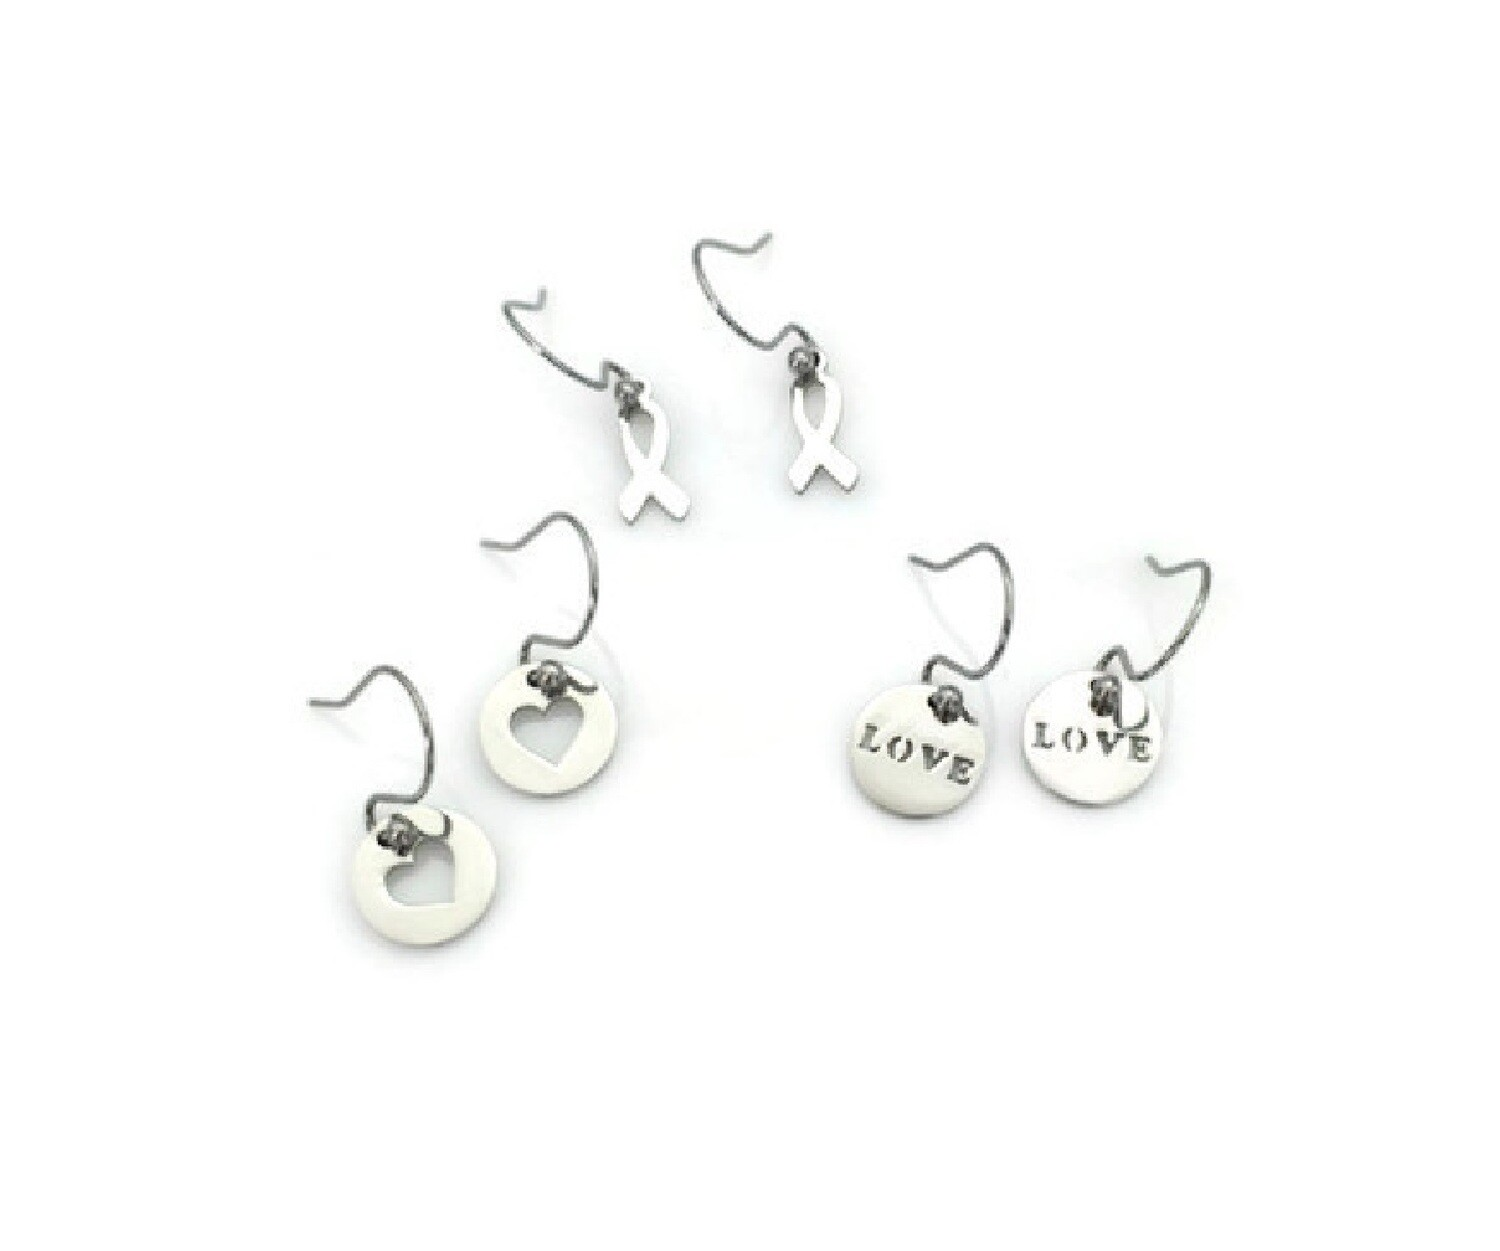 Love and Awareness Earrings with Interchangeable Pendants